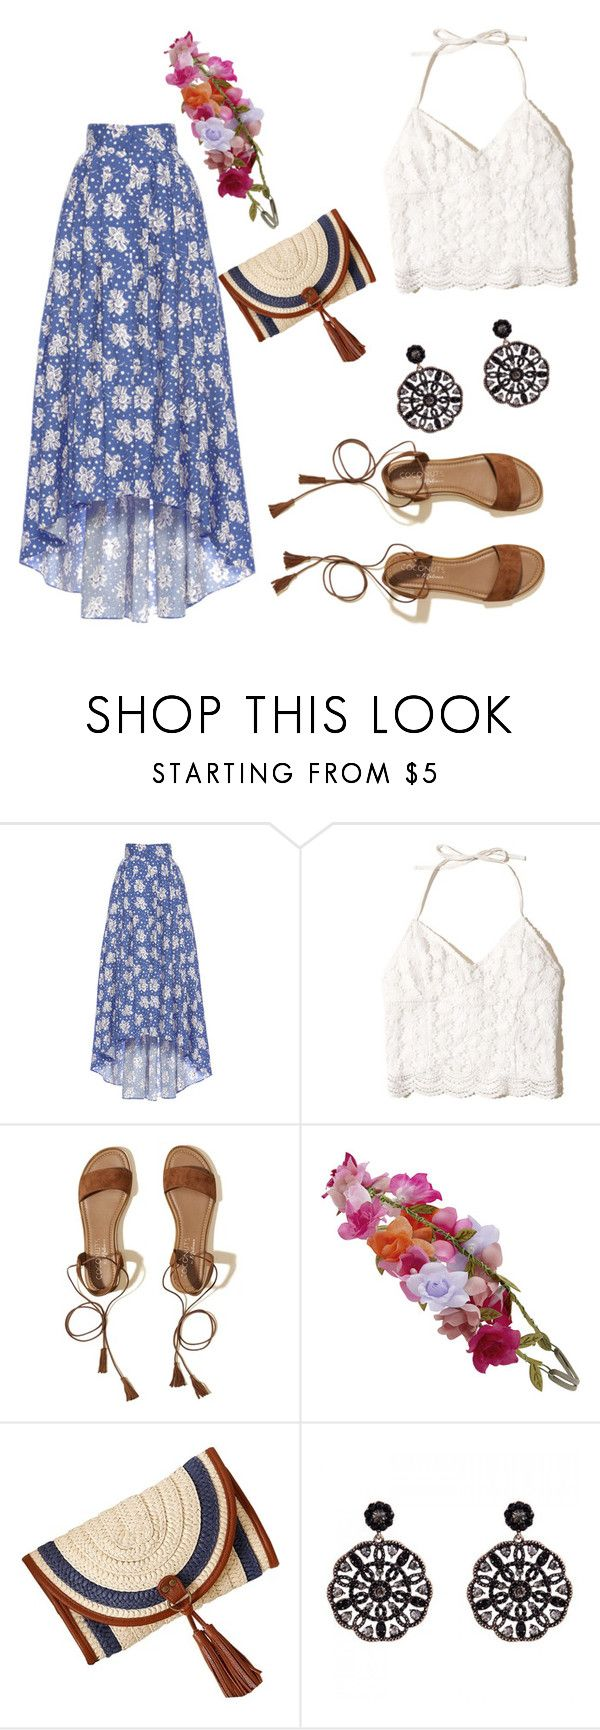 """""""Barcelona"""" by nikkey23 ❤ liked on Polyvore featuring LUISA BECCARIA, Hollister Co. and Accessorize"""